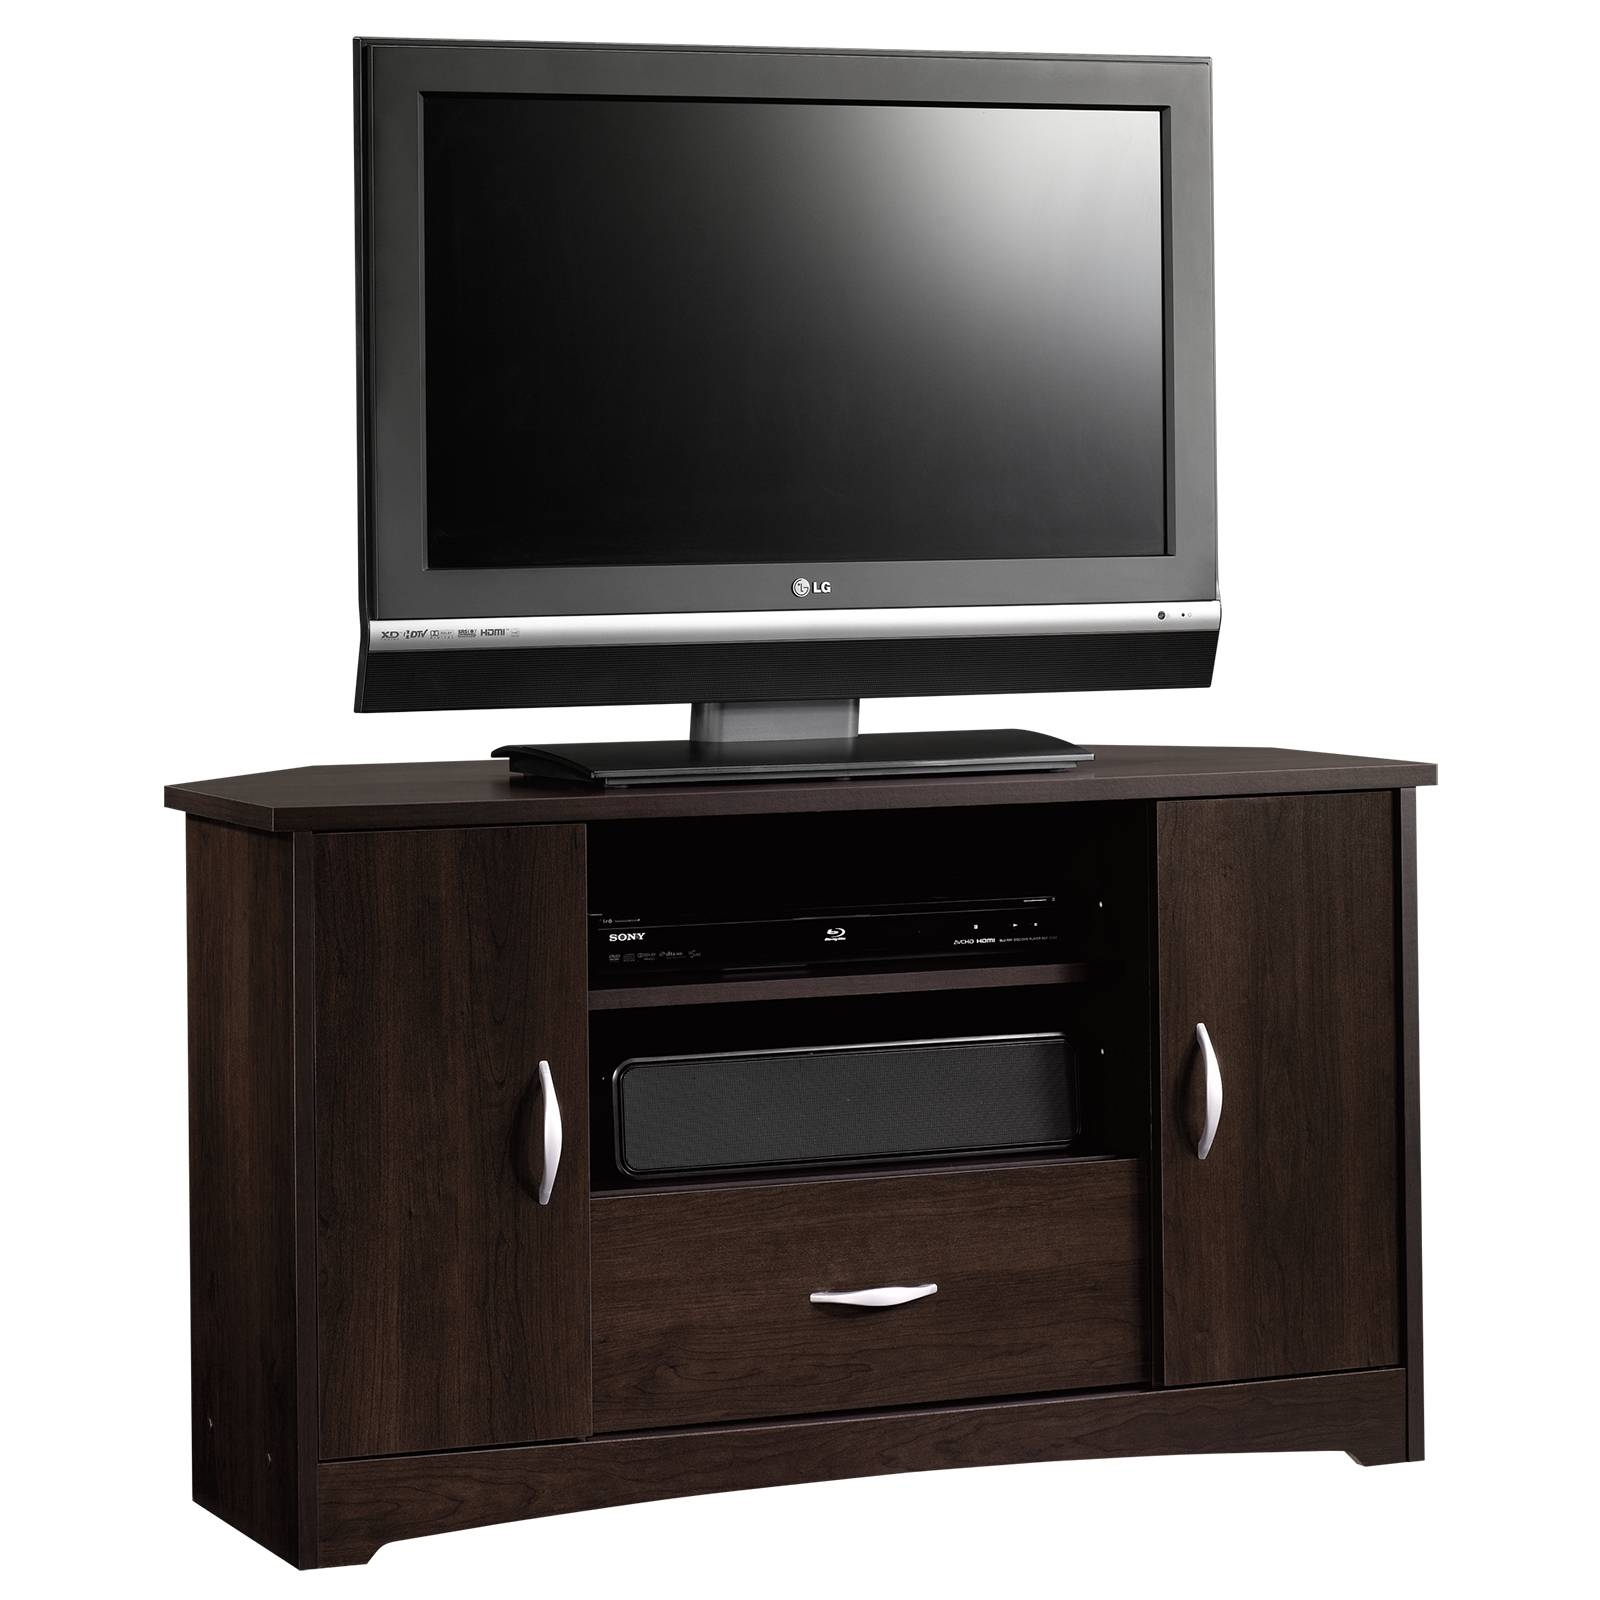 Tremendous Flat Screens New Teak Furnitures As Wells As Flat pertaining to Corner Tv Stands With Drawers (Image 11 of 15)